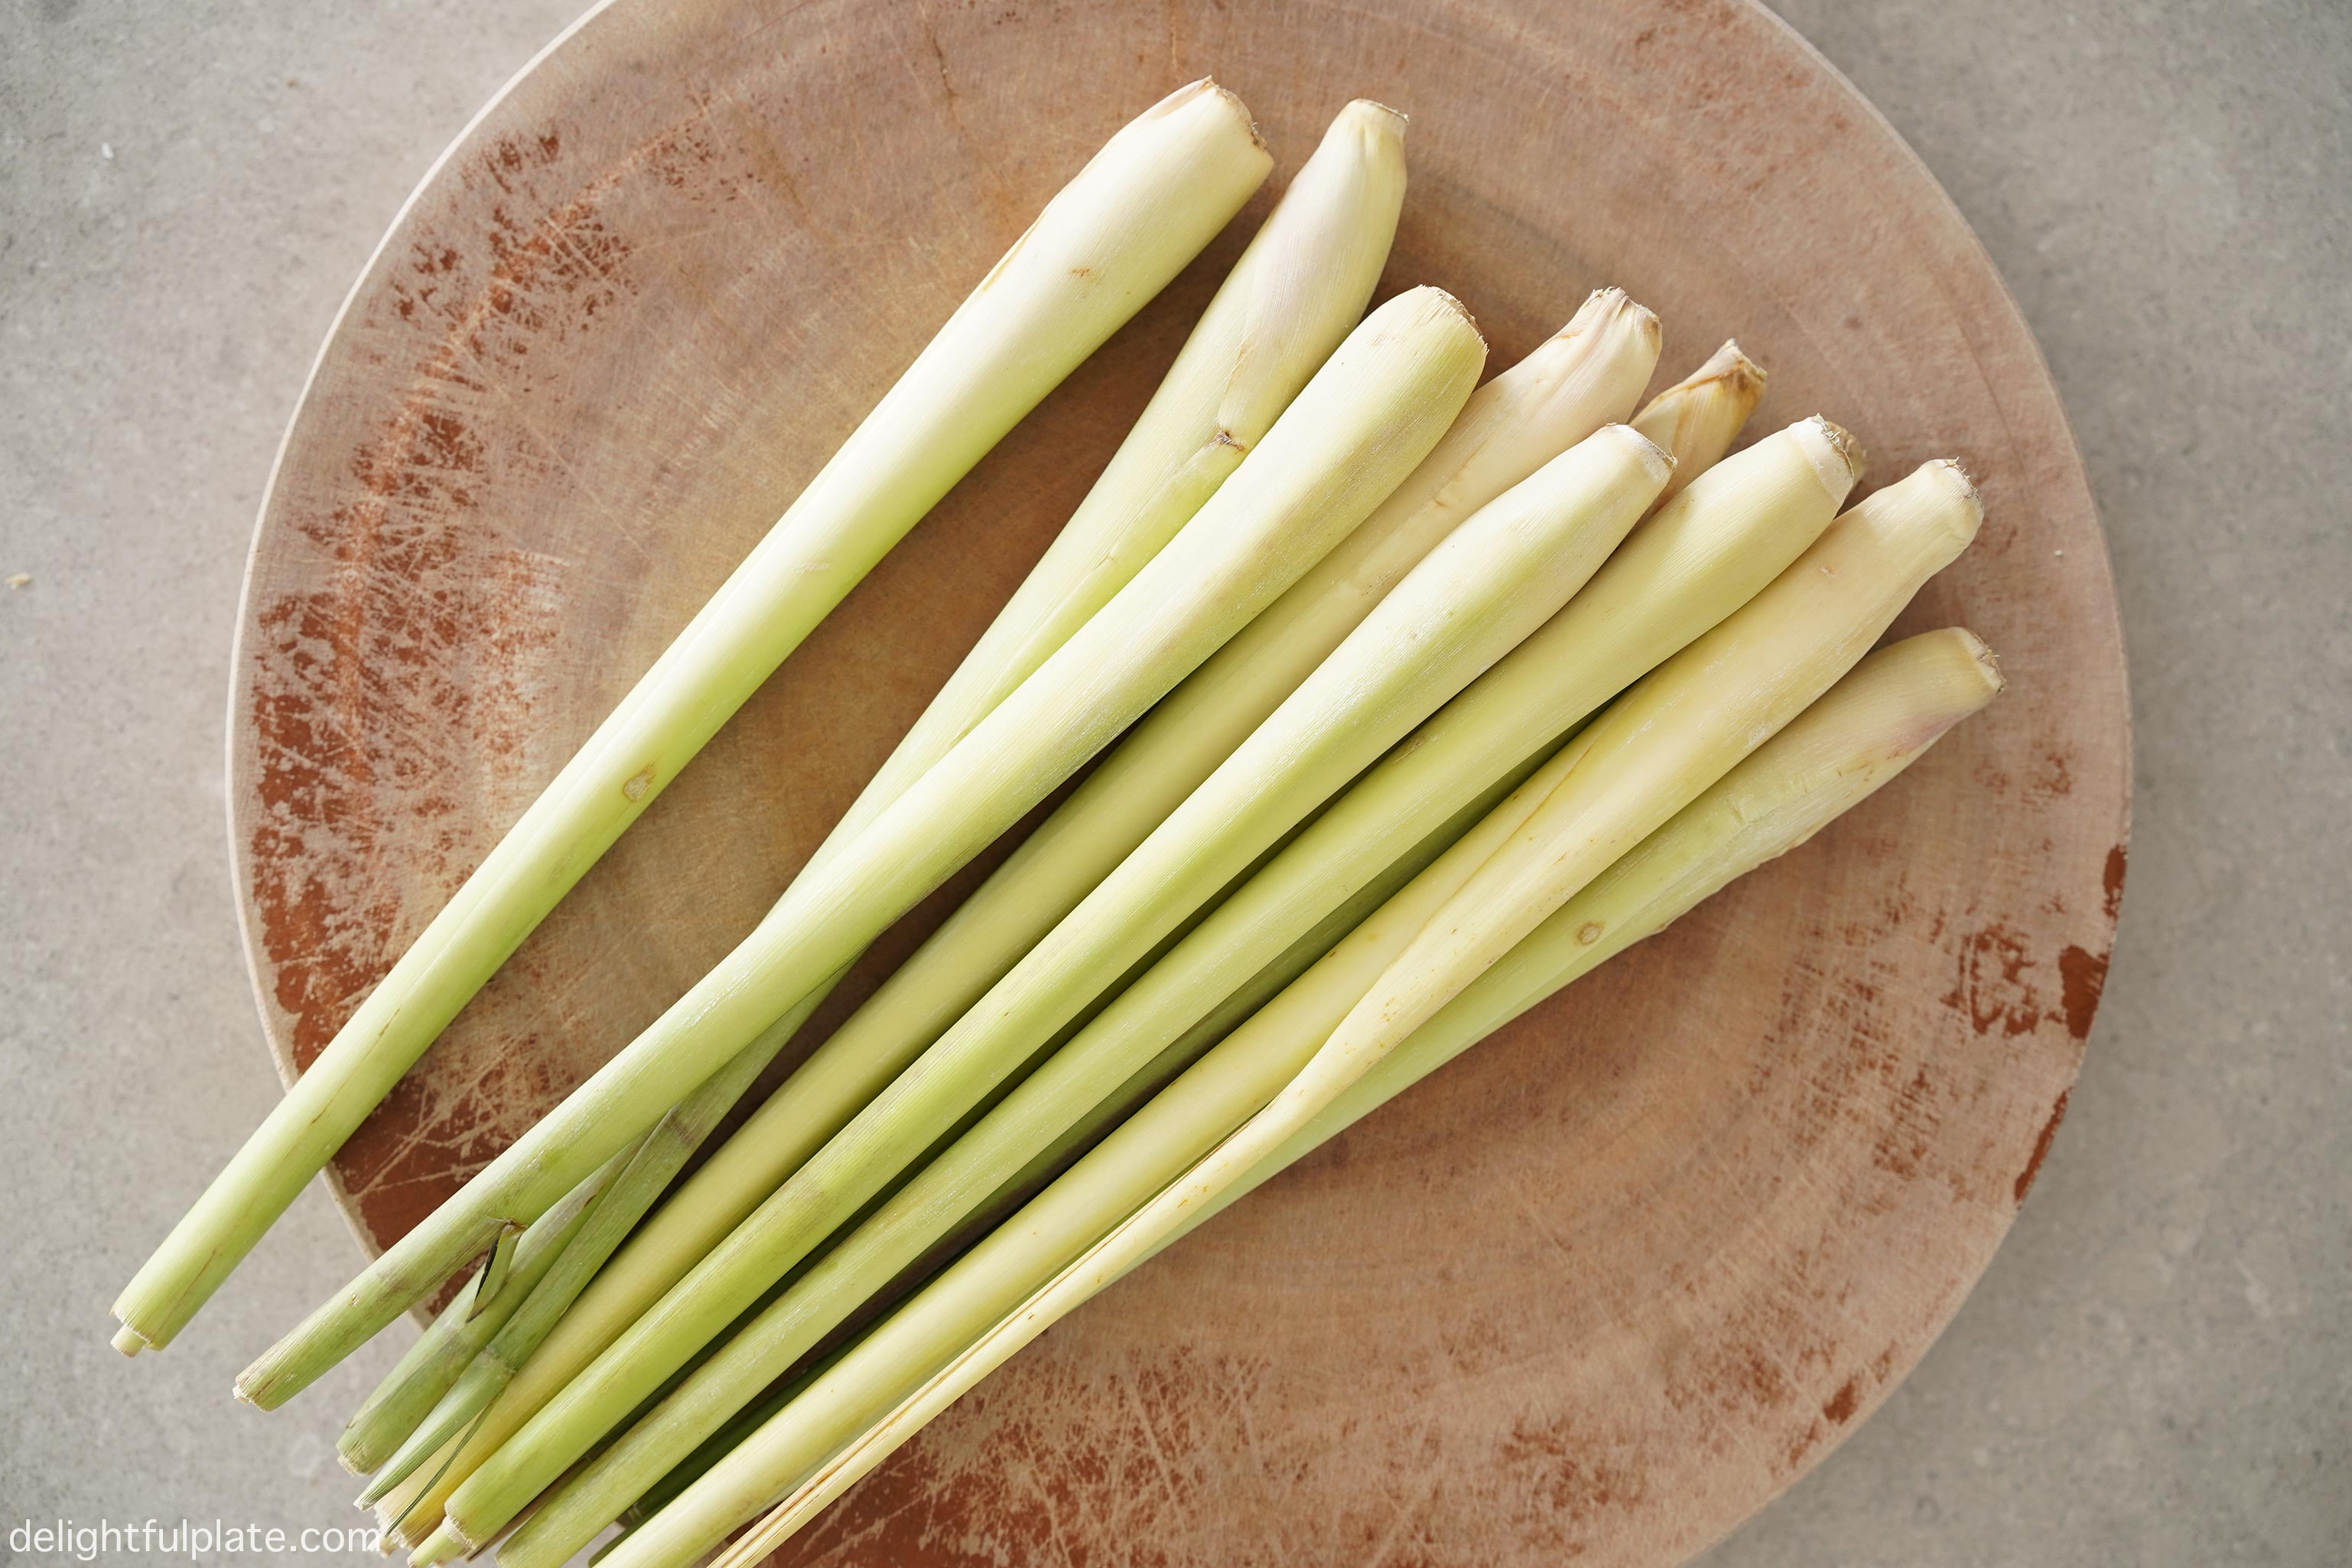 lemongrass stalks on a cutting board